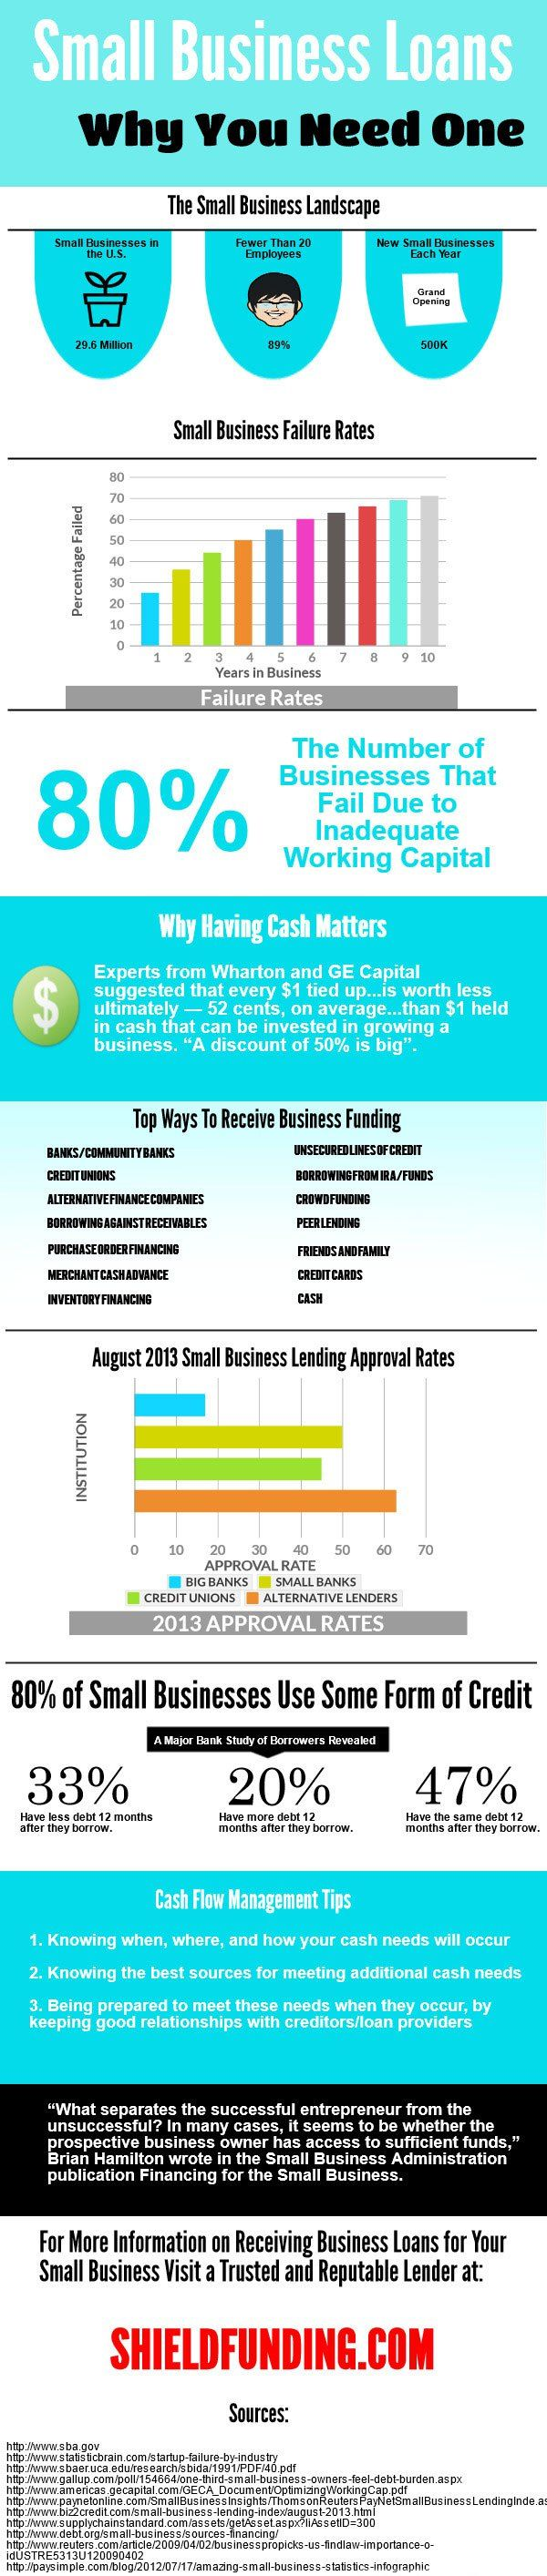 Small Business Loans: Why You Need One [INFOGRAPHIC] #smallbusiness #loans